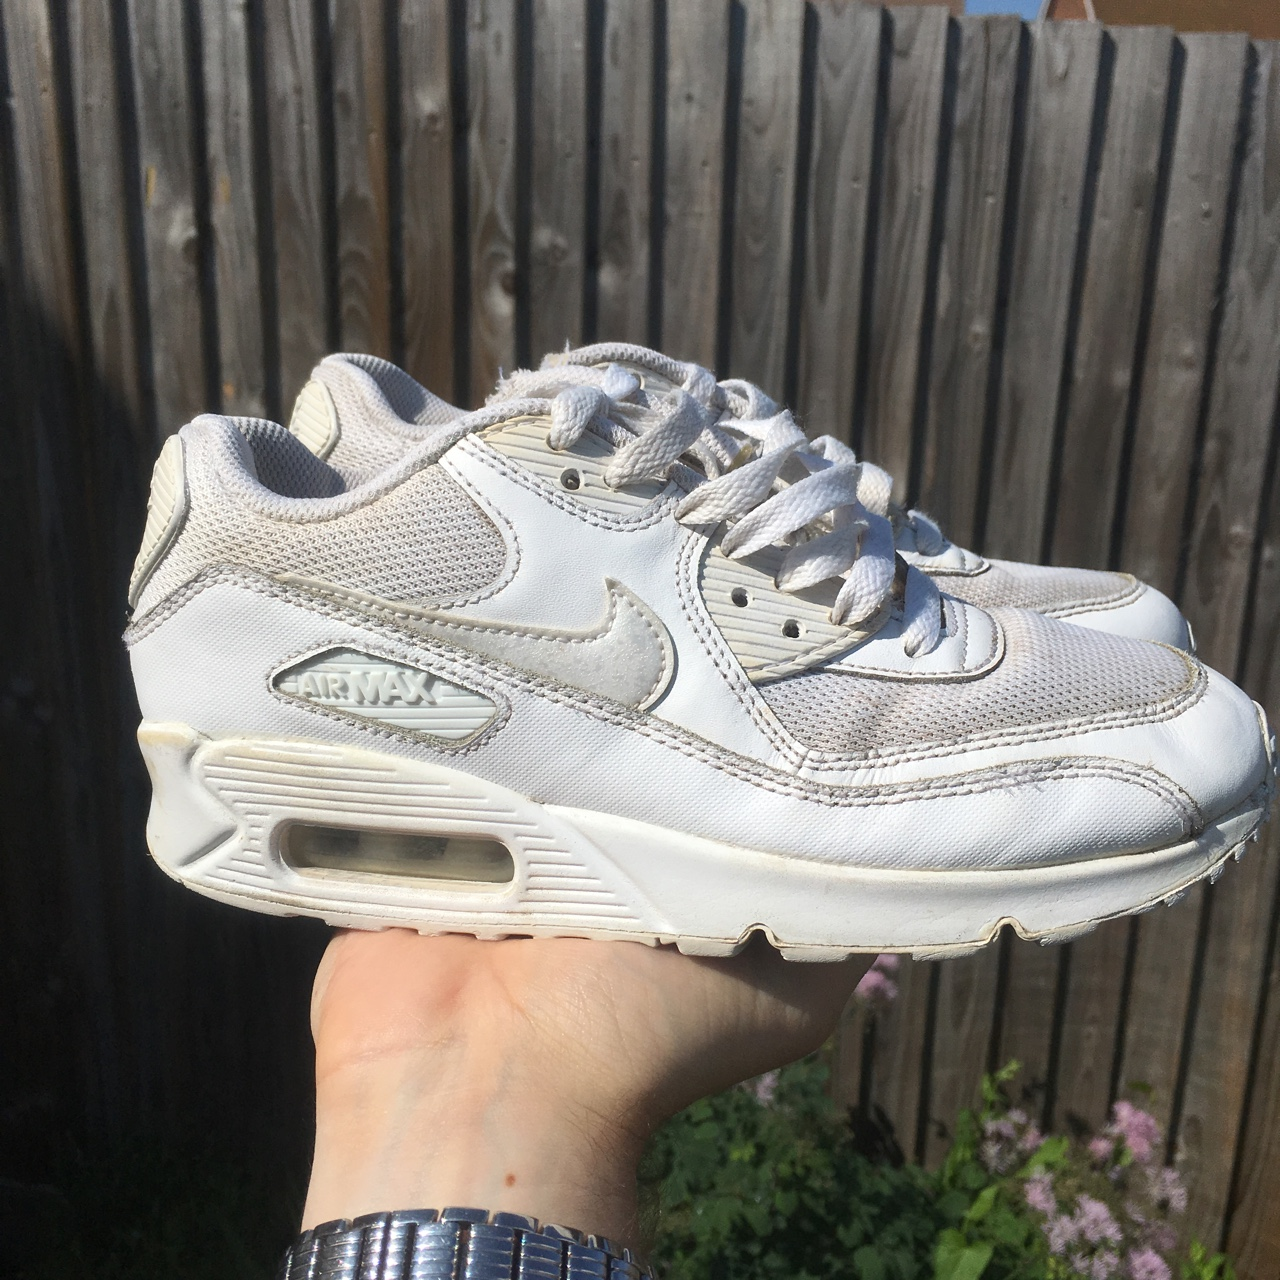 A brilliant pair of white Nike Air Max 90 trainers! Depop